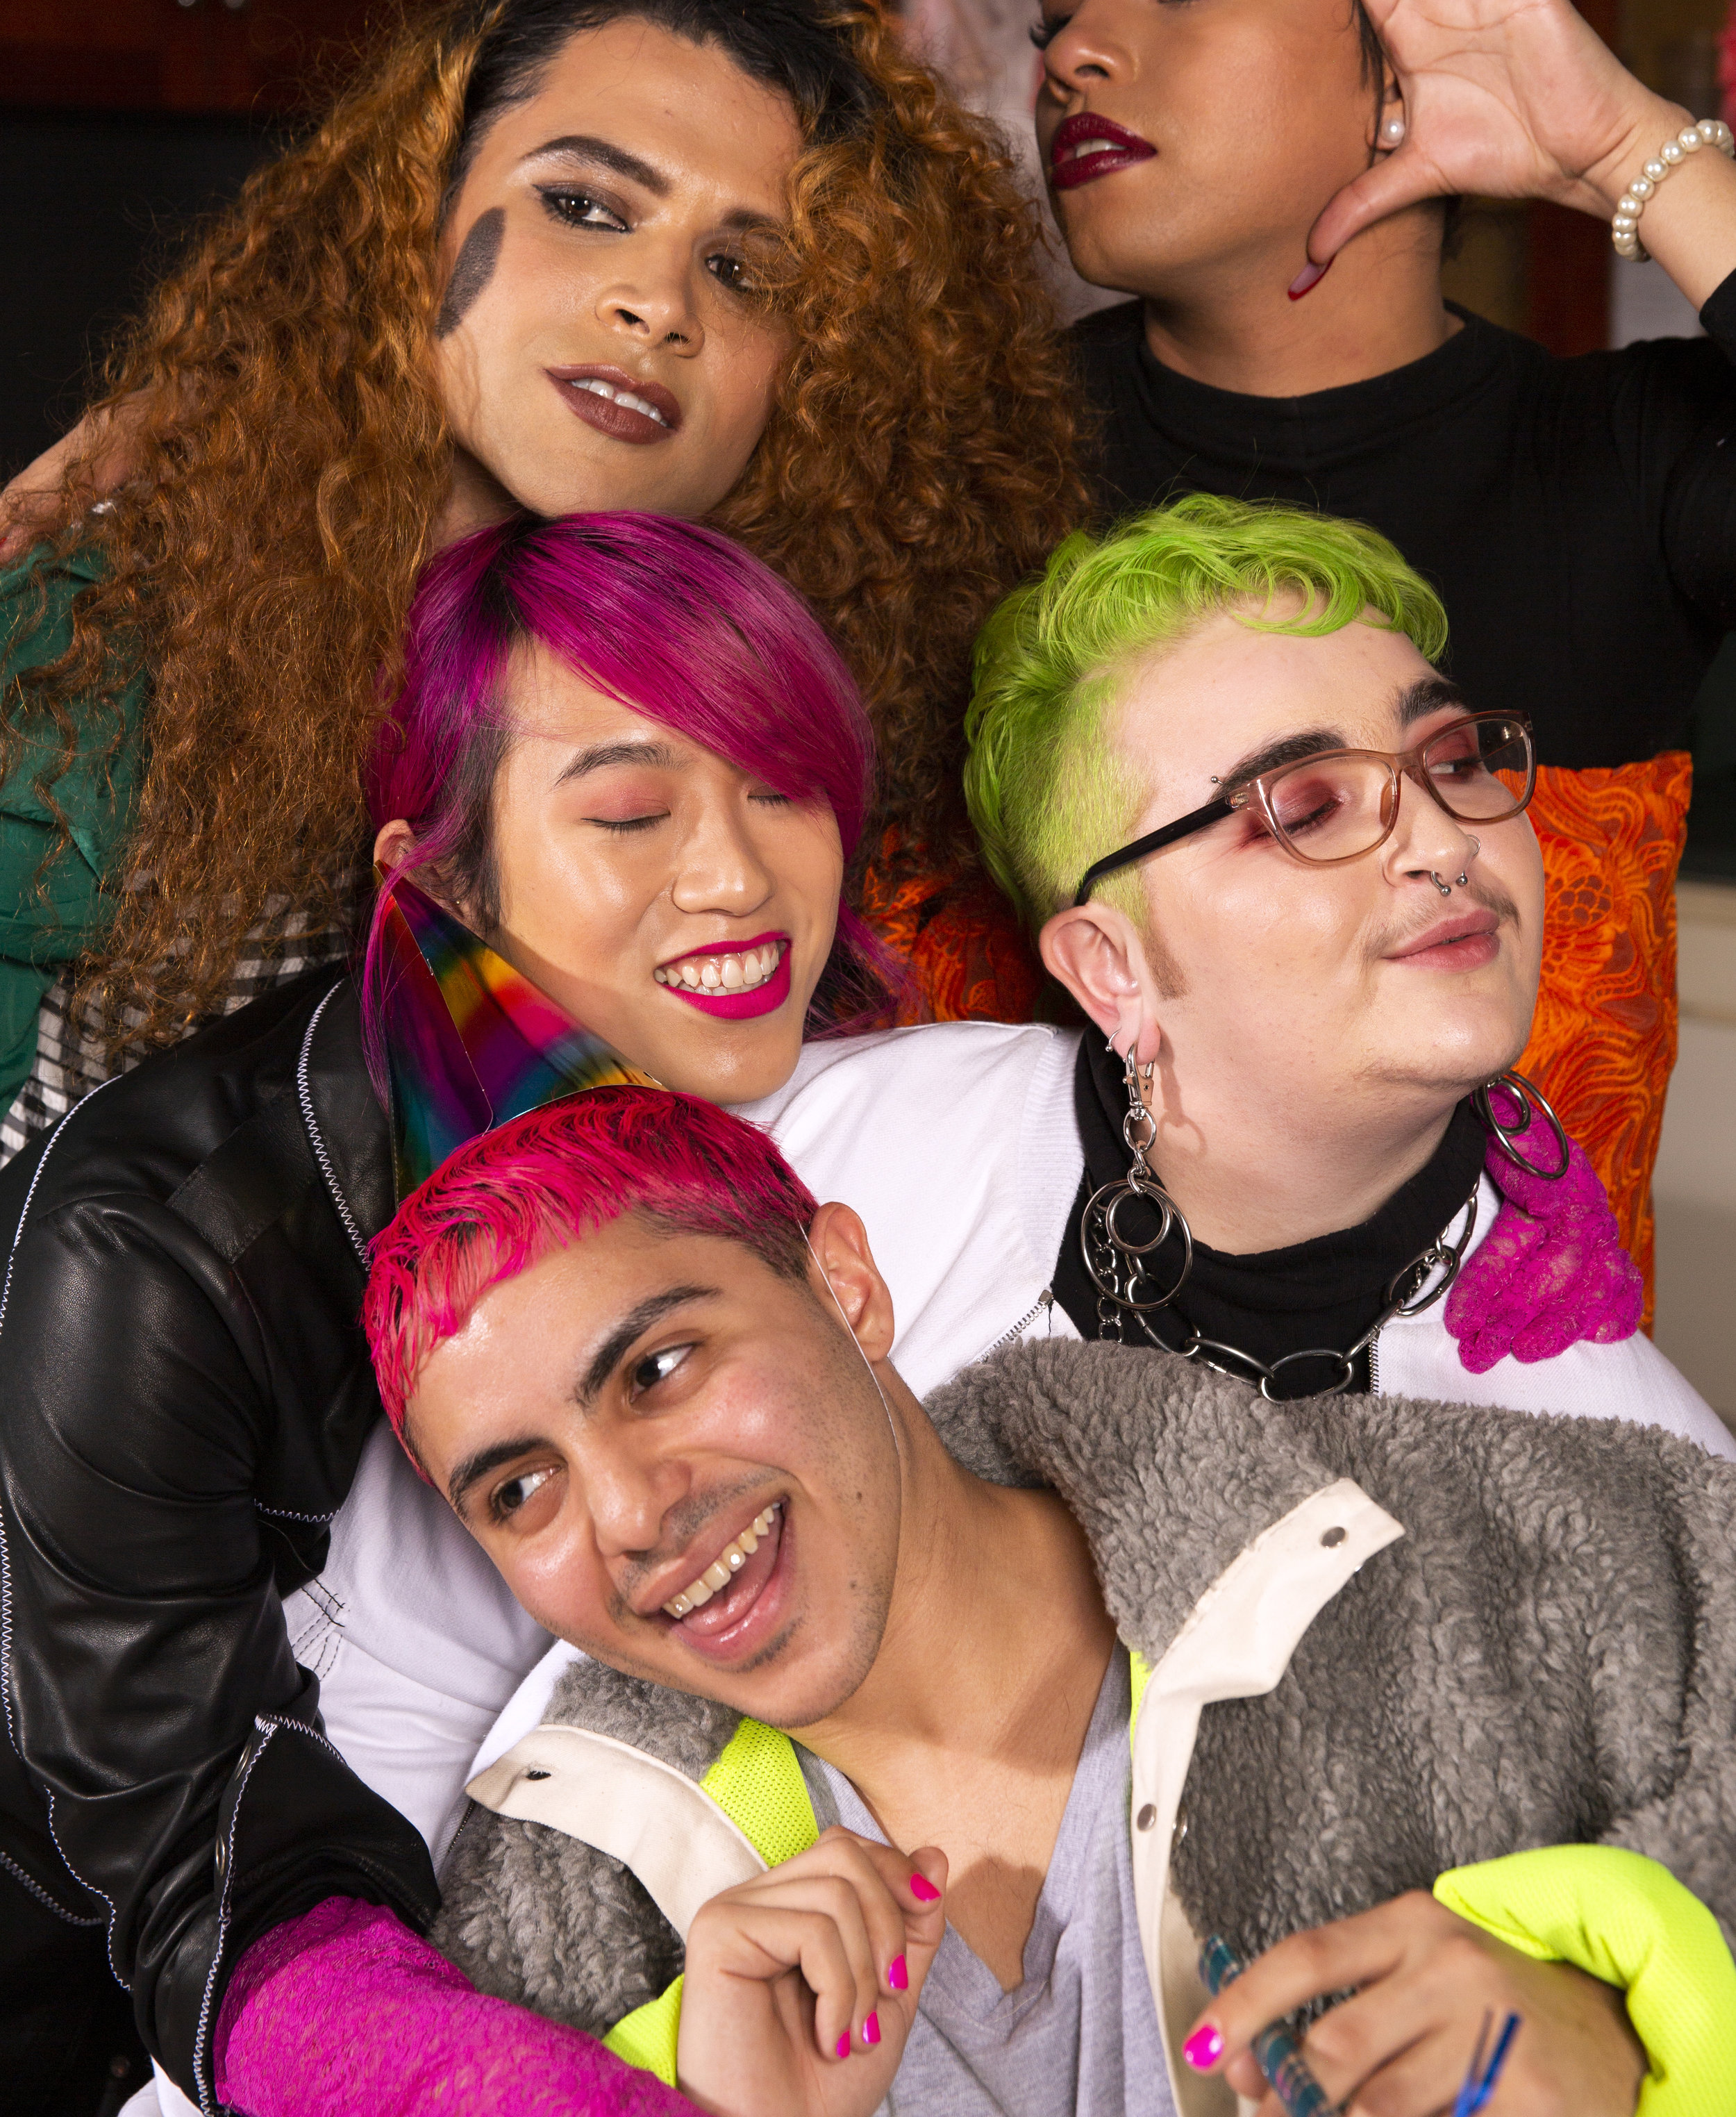 A group of friends of varying genders taking a photo at a party having a party.jpg